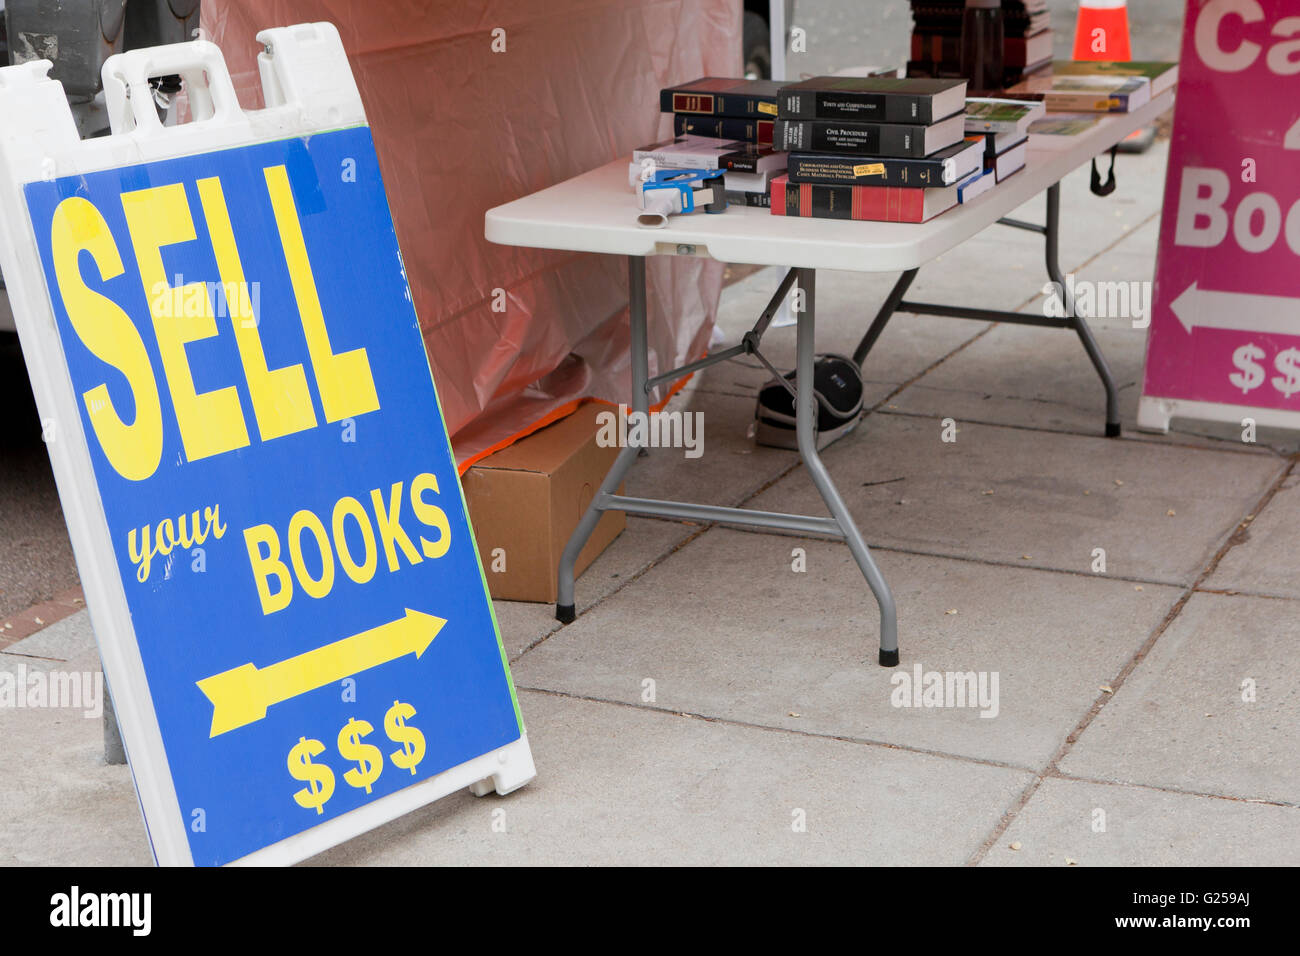 'Sell your books' sign at university - USA - Stock Image